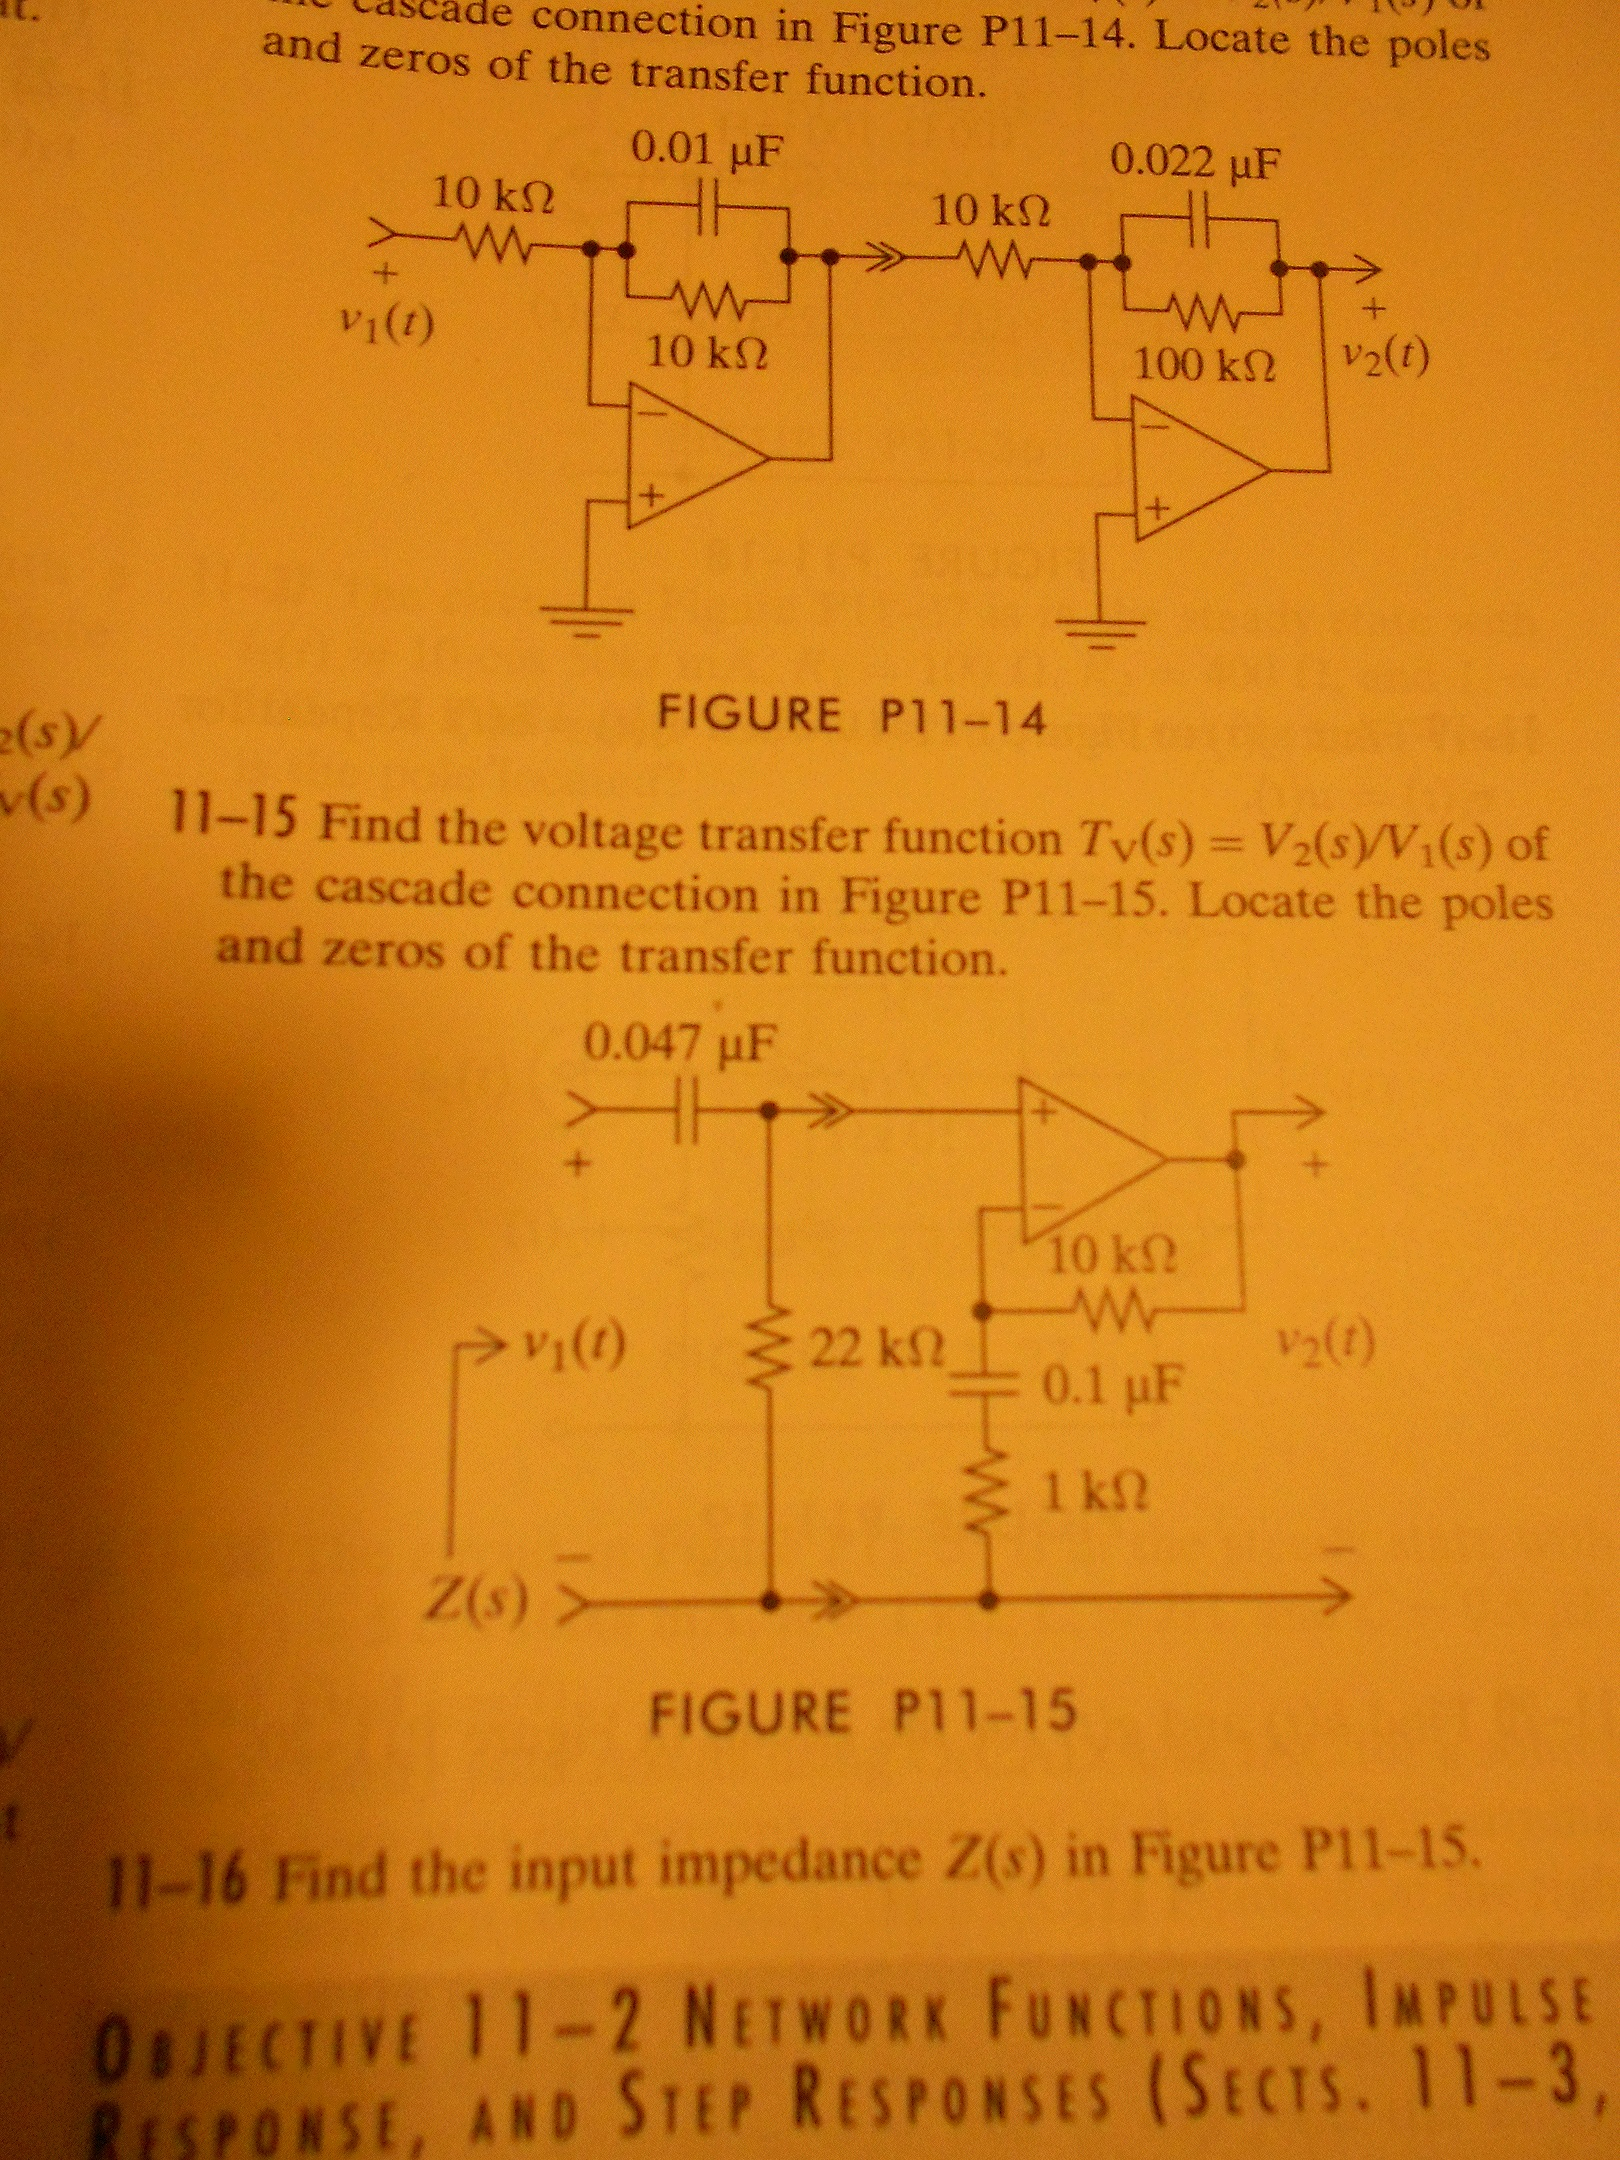 Find the voltage transfer function Tv(s) = V2(s)/V